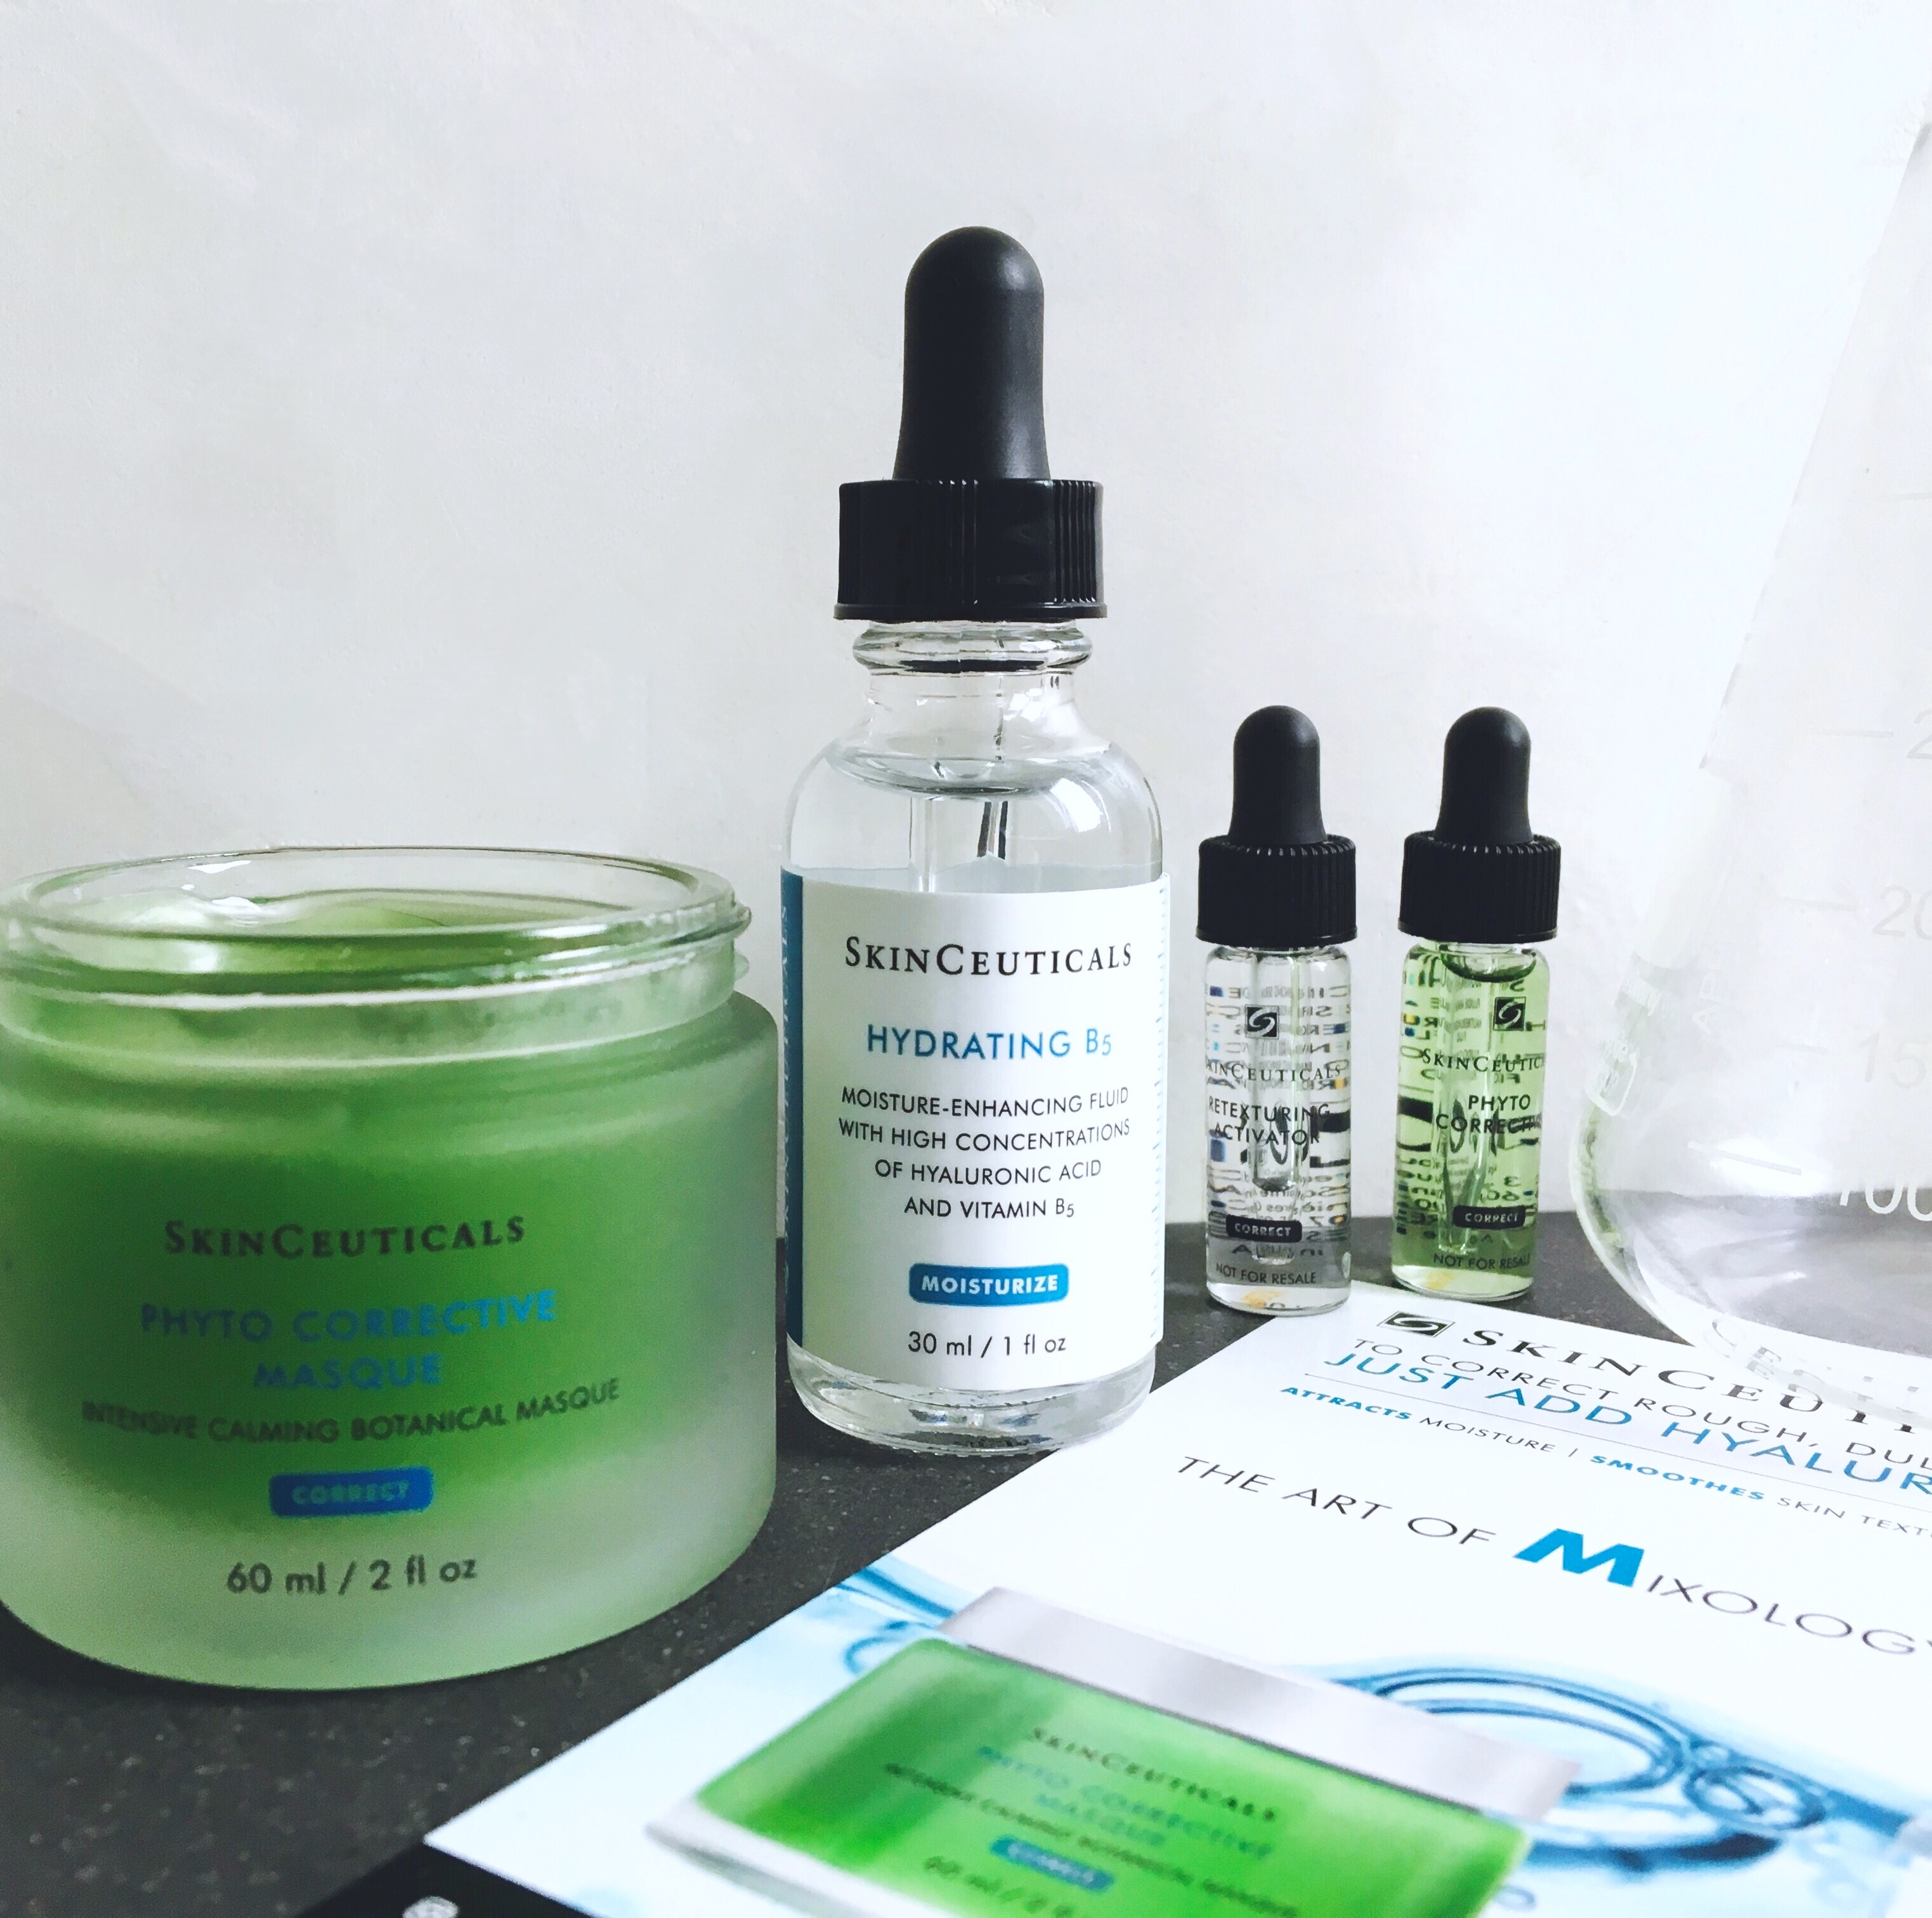 Skinceuticals Mix 1 - hold